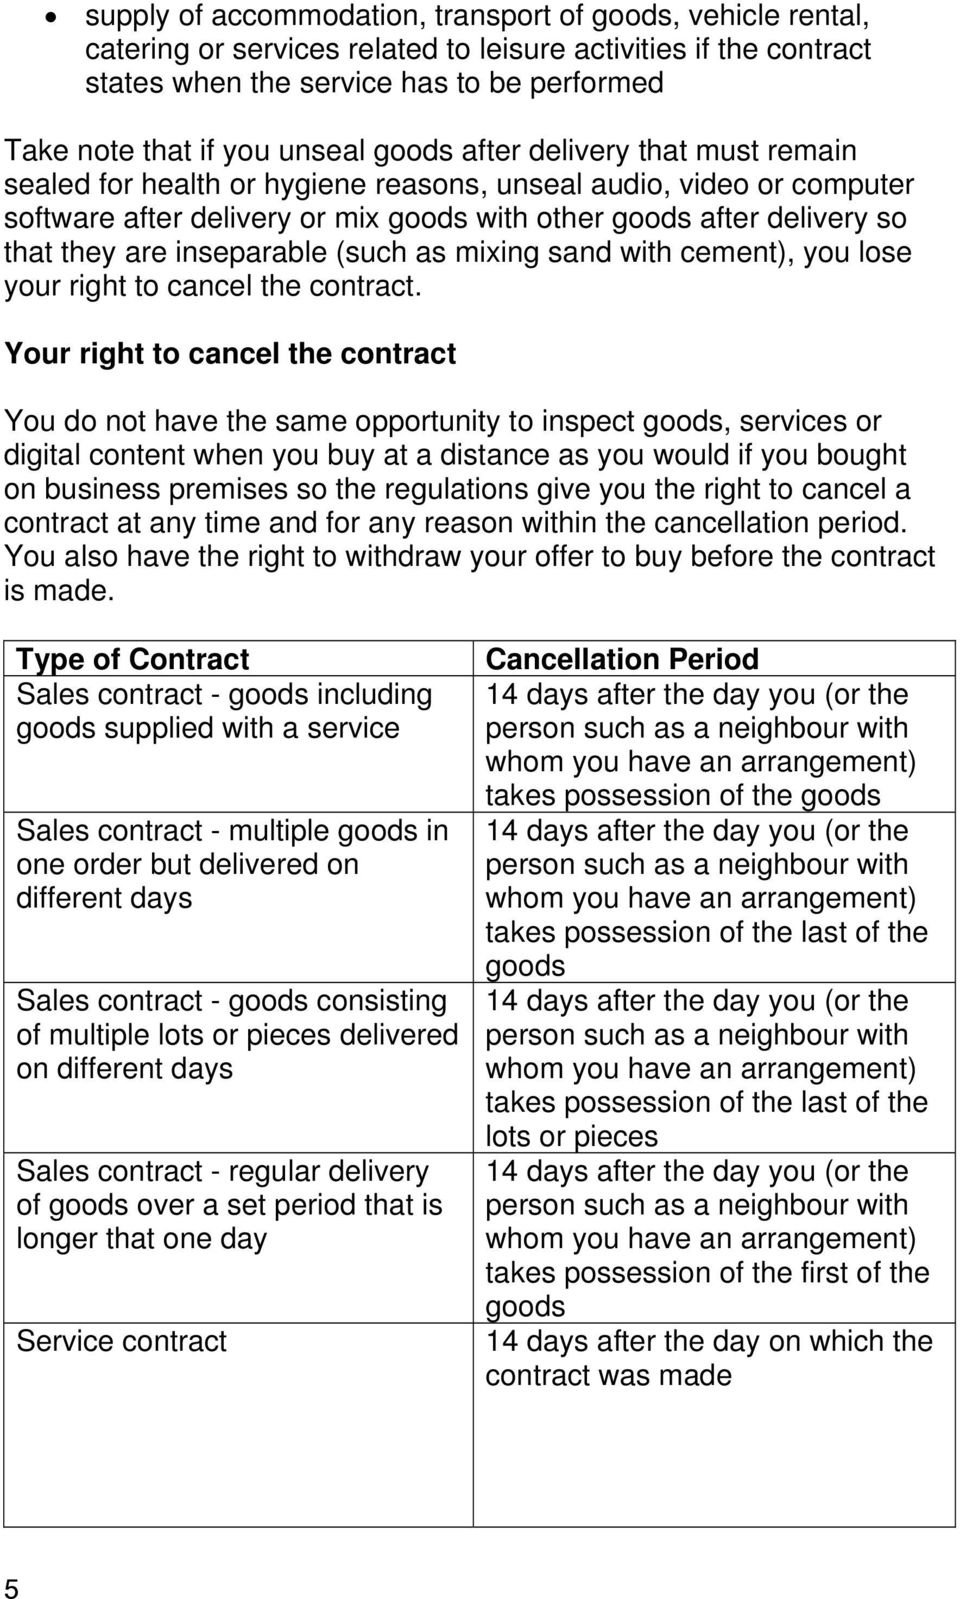 are inseparable (such as mixing sand with cement), you lose your right to cancel the contract.